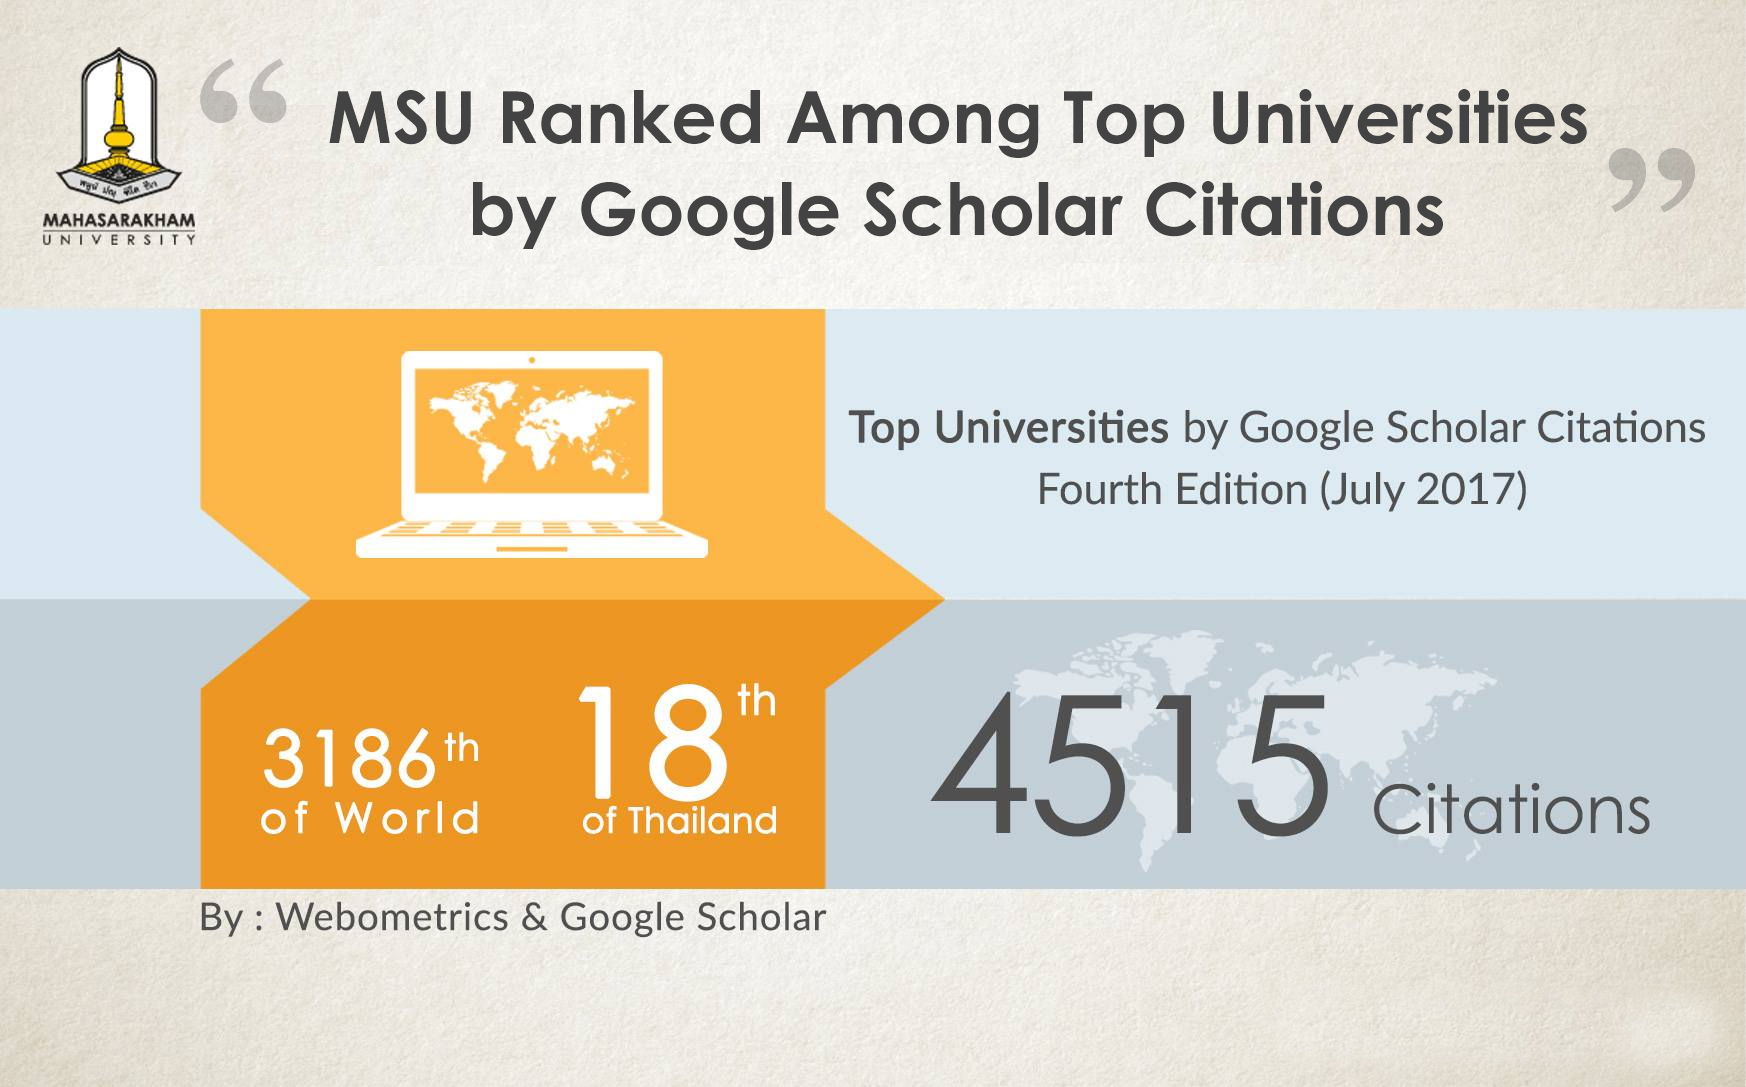 MSU Ranked Among Top Universities by Google Scholar Citations